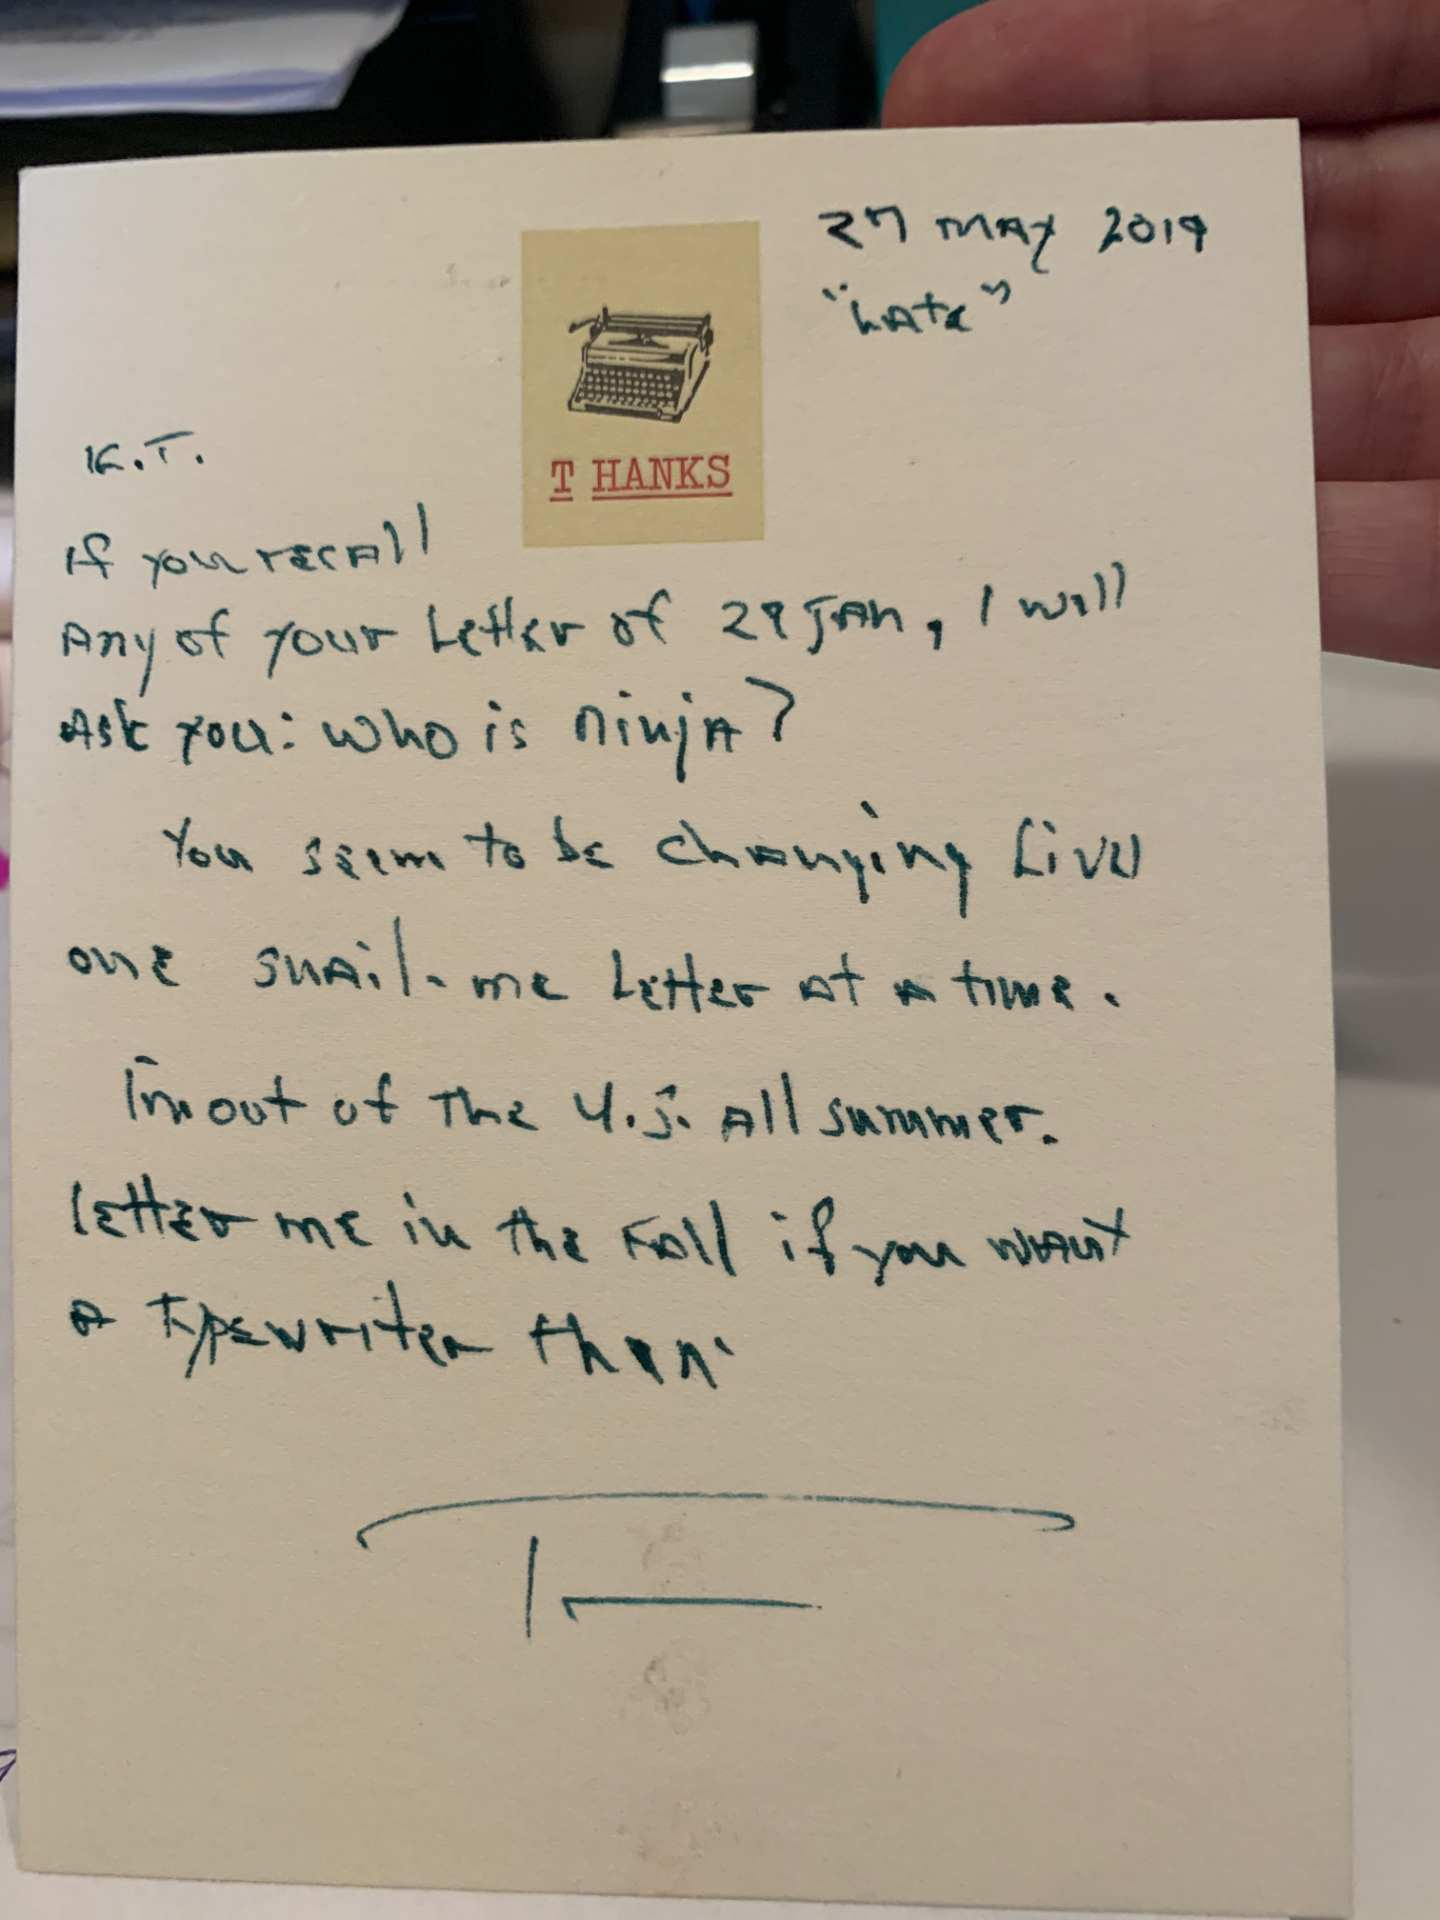 Tom Hanks sent me another letter and we talked about Ninja.